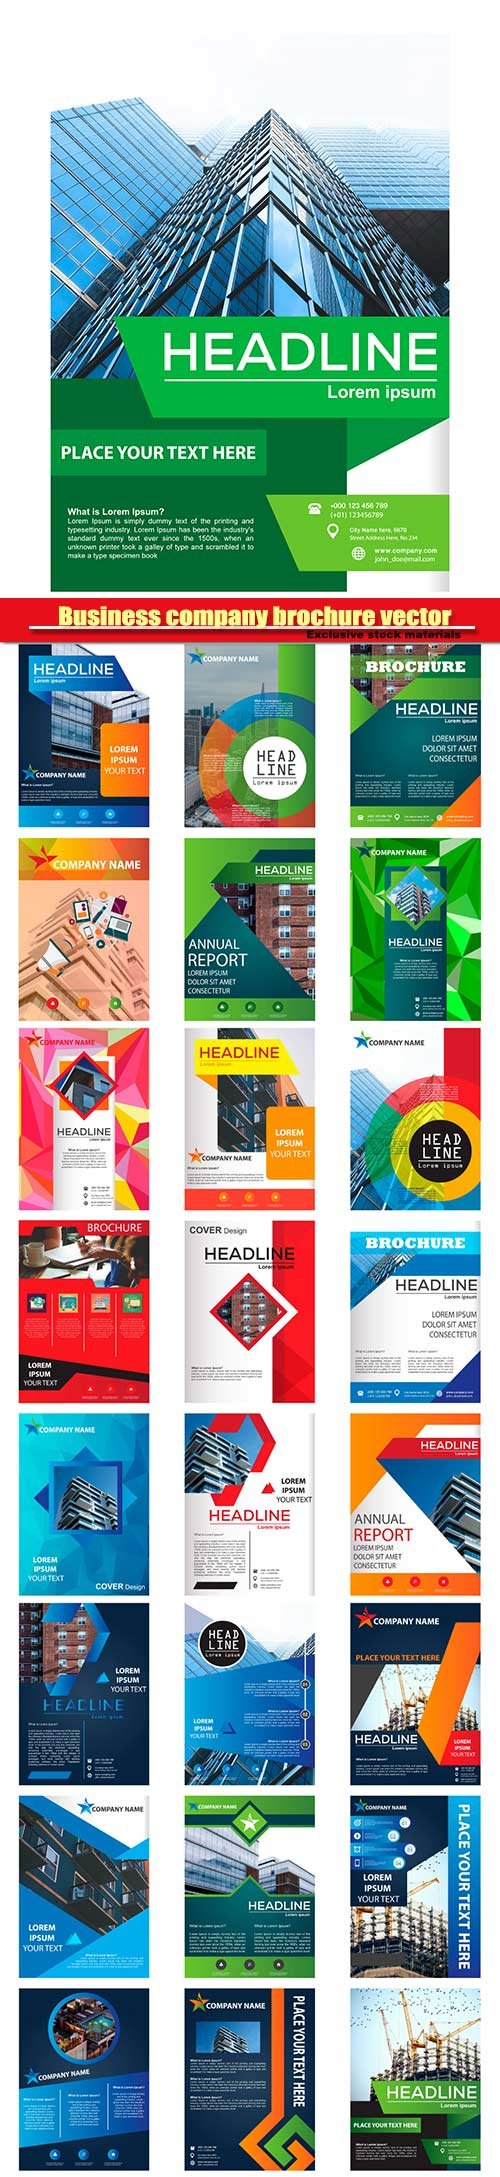 Business company brochure vector